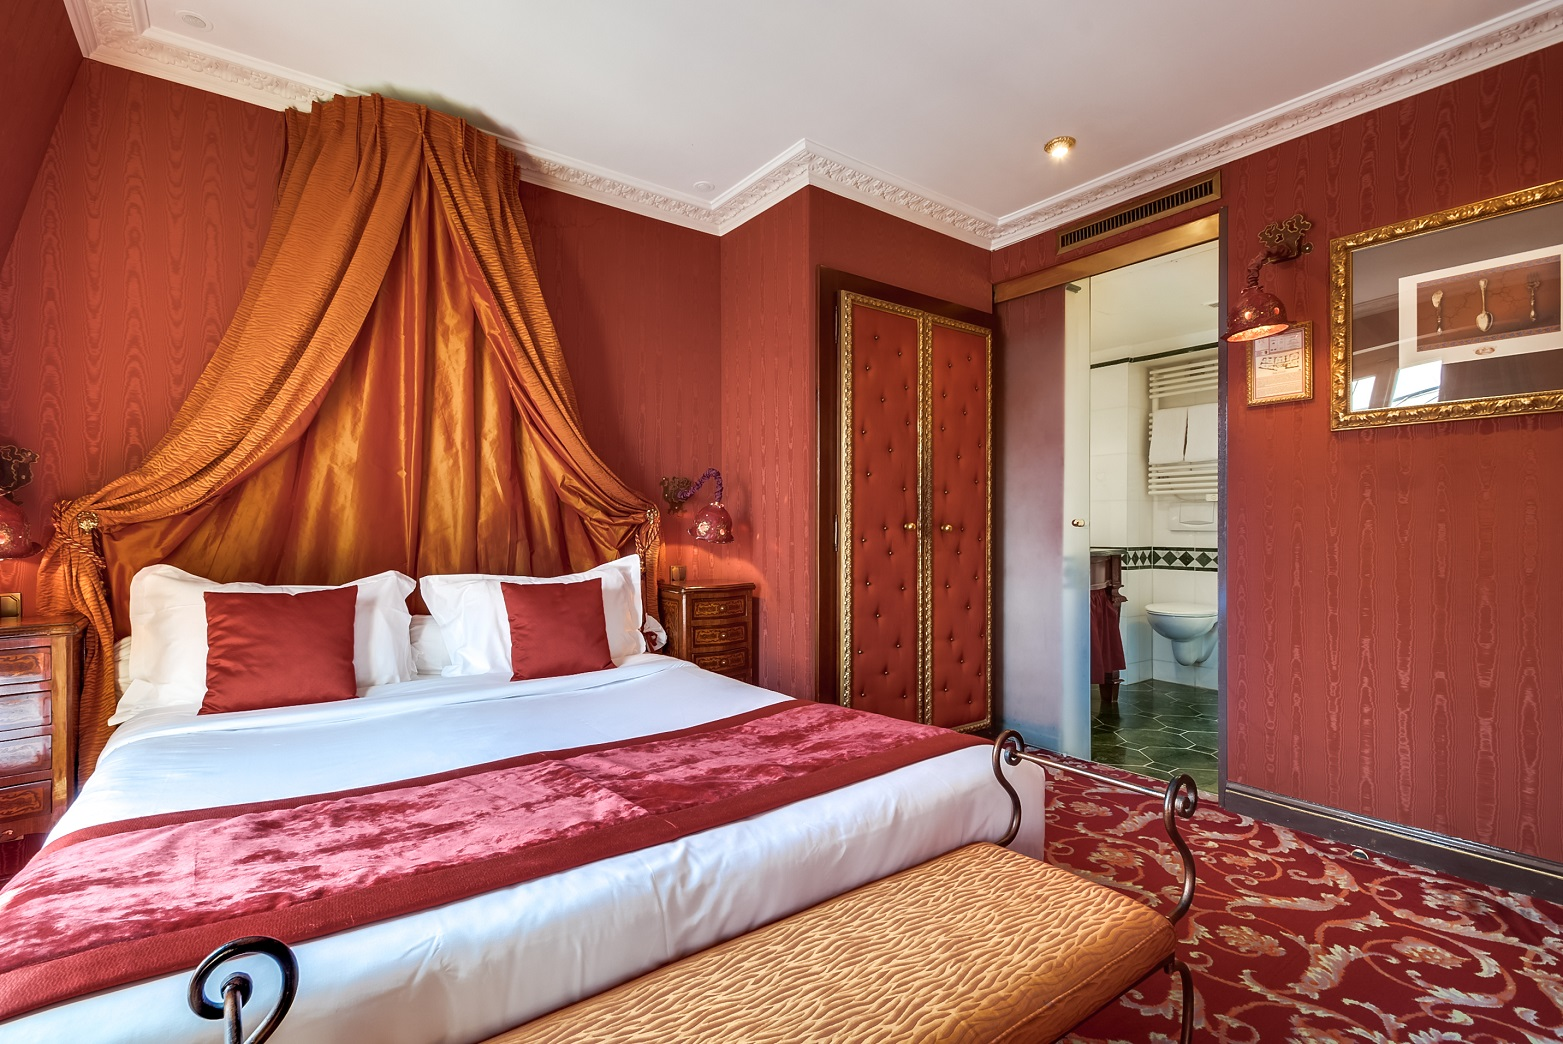 49/Chambres/Single/Chambre - Romantique - Honeymoon - Paris - Montmartre.jpg